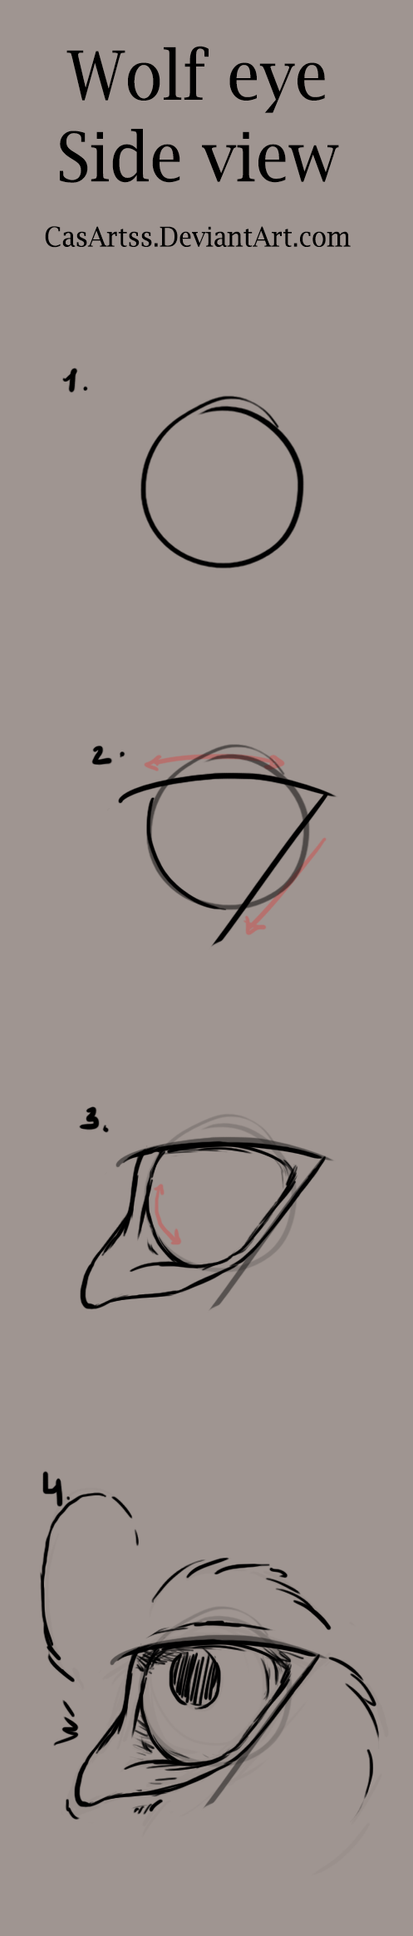 Wolf eye tutorial (side view) by CasArtss